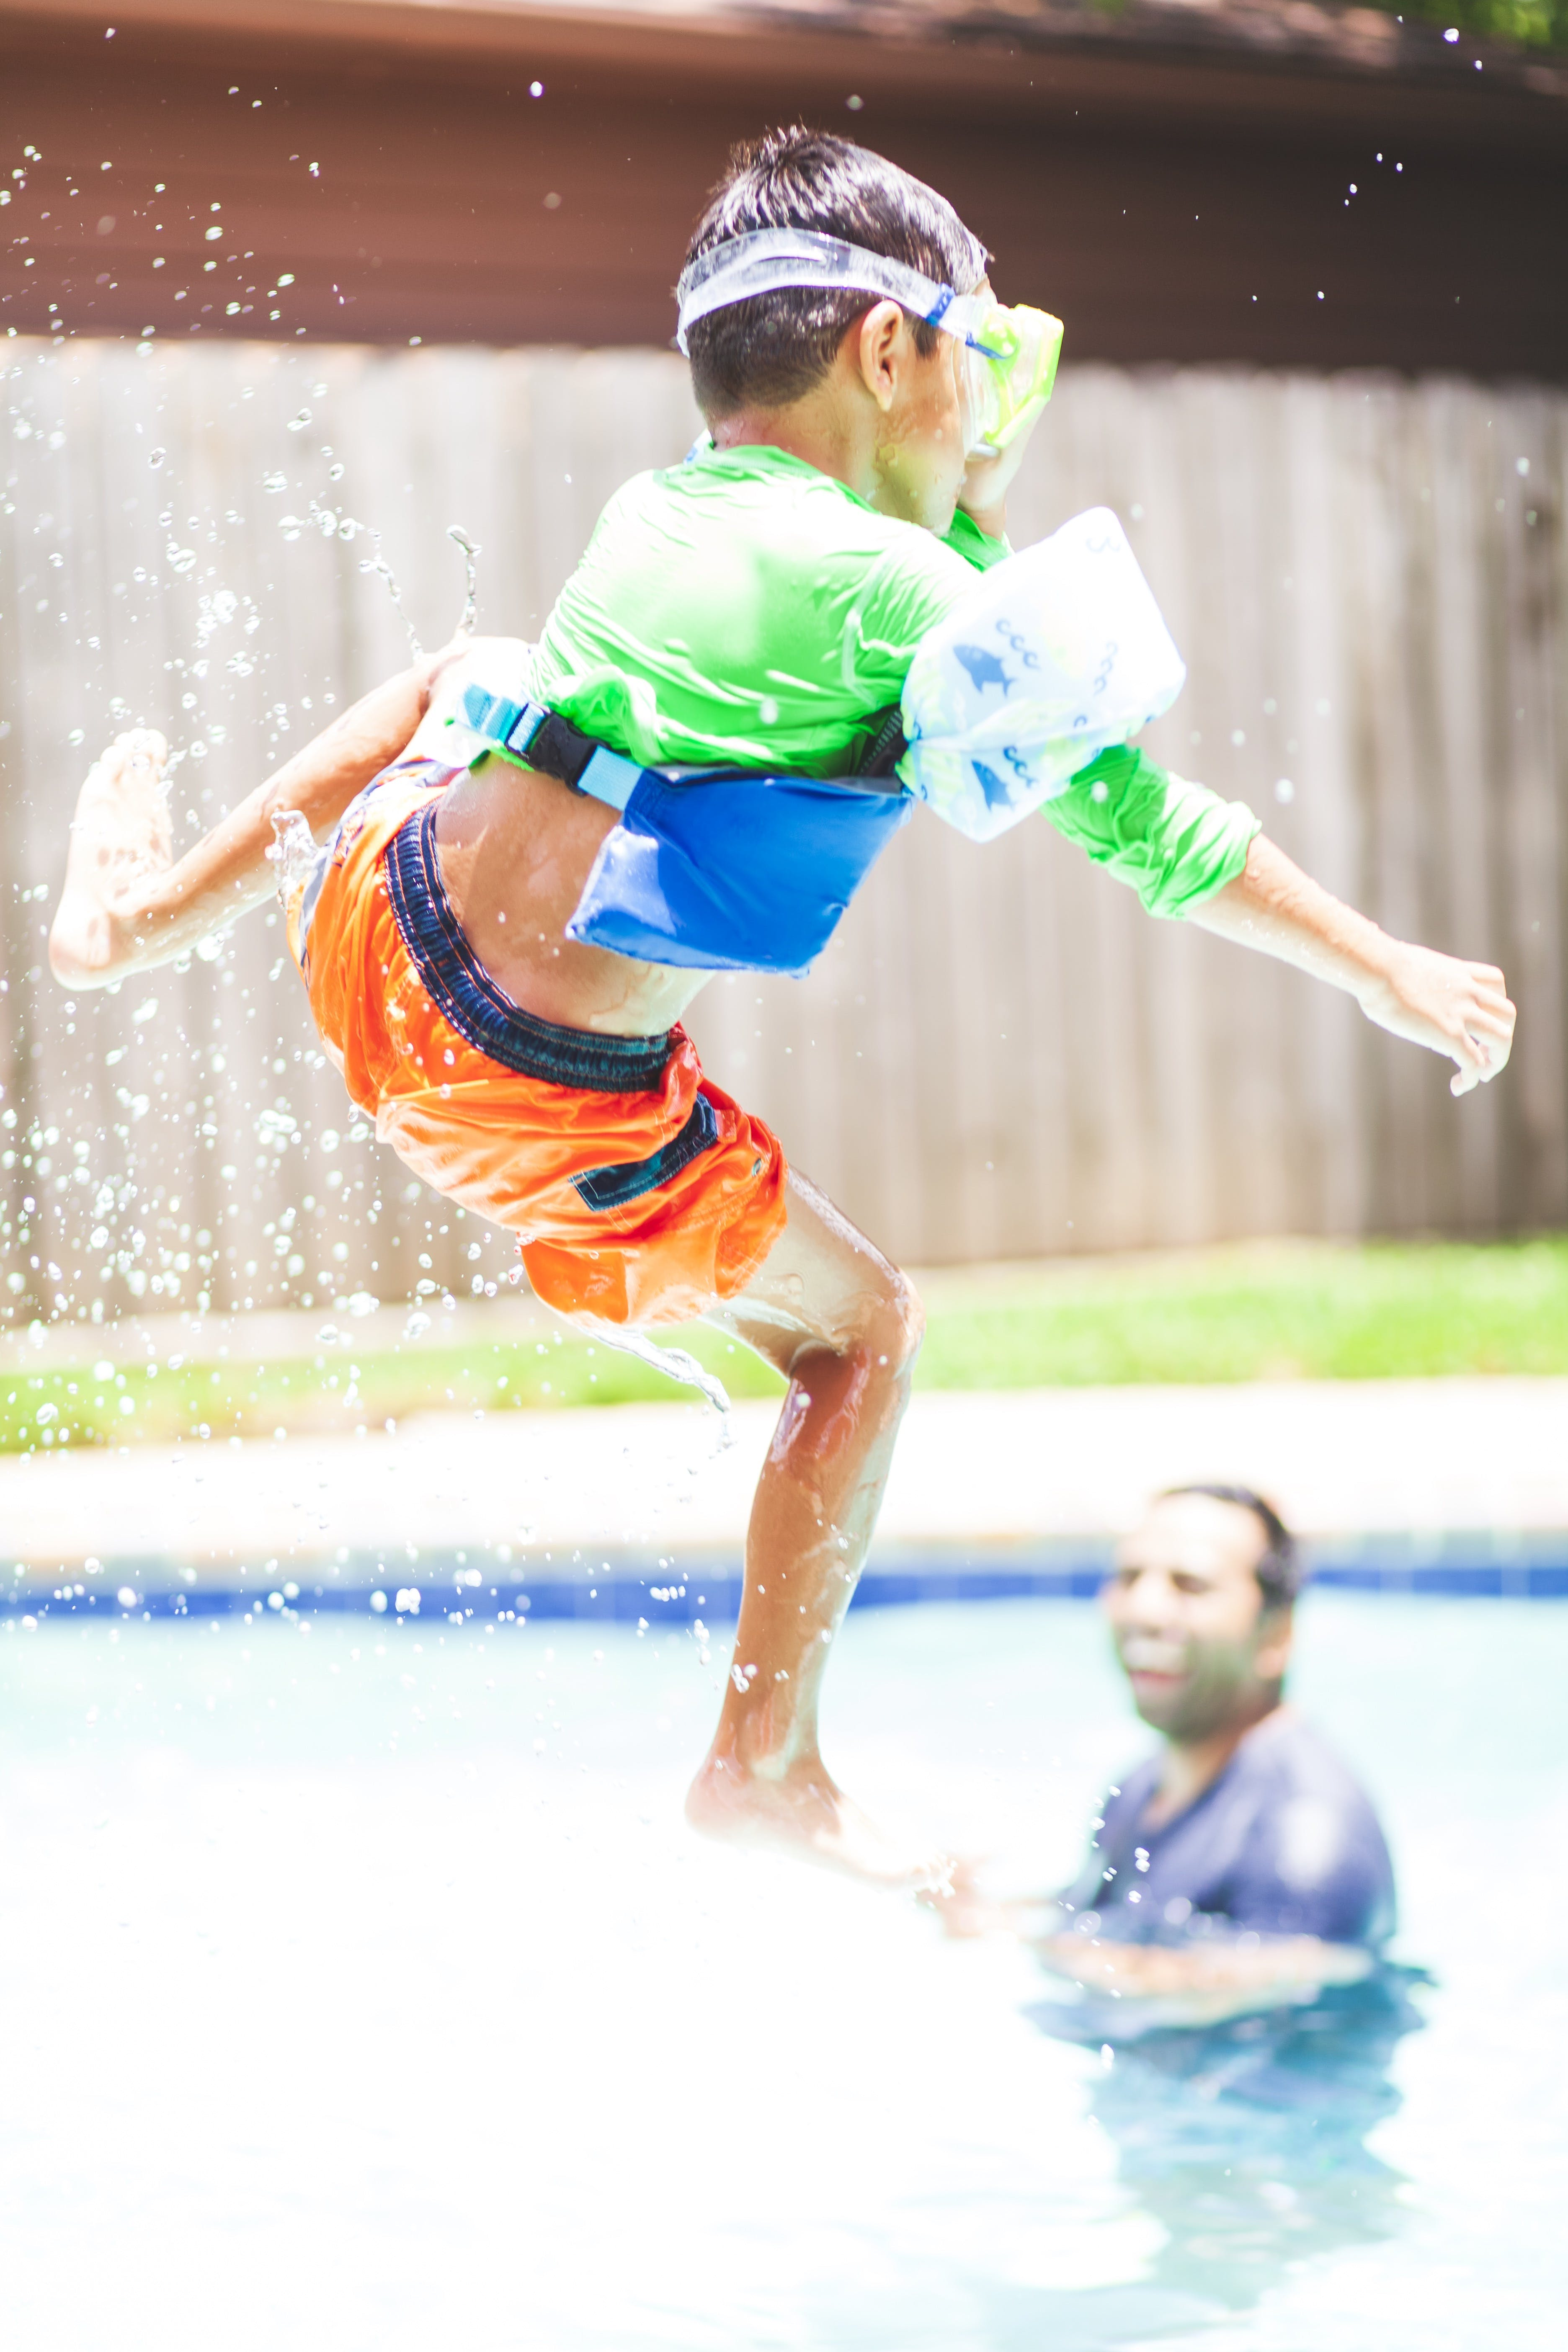 Boy in Green Crew-neck Shirt and Orange Shorts Jump over Swimming Pool